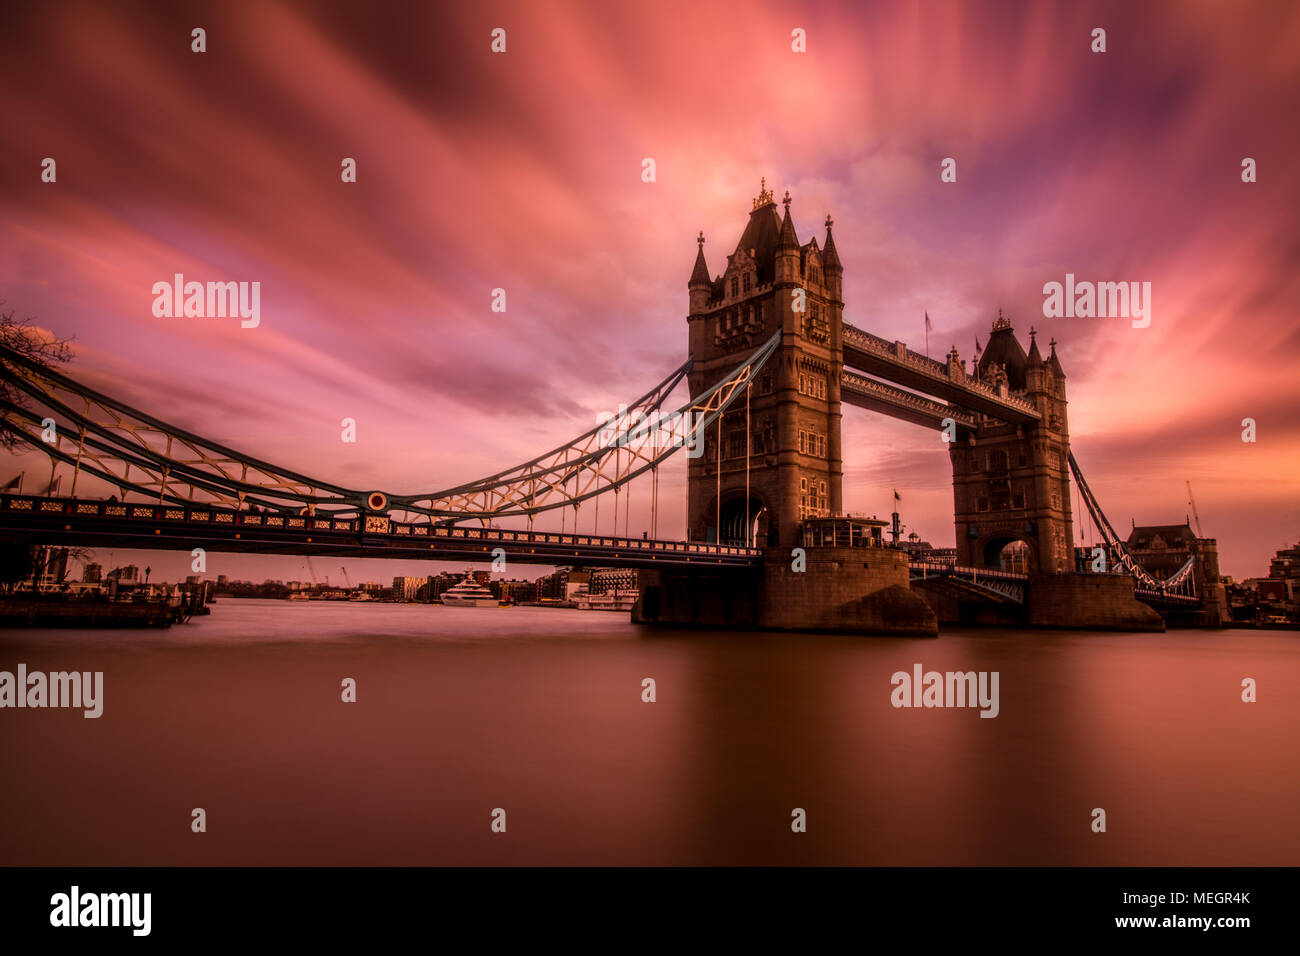 Sunset over Tower Bridge, London, England - Stock Image